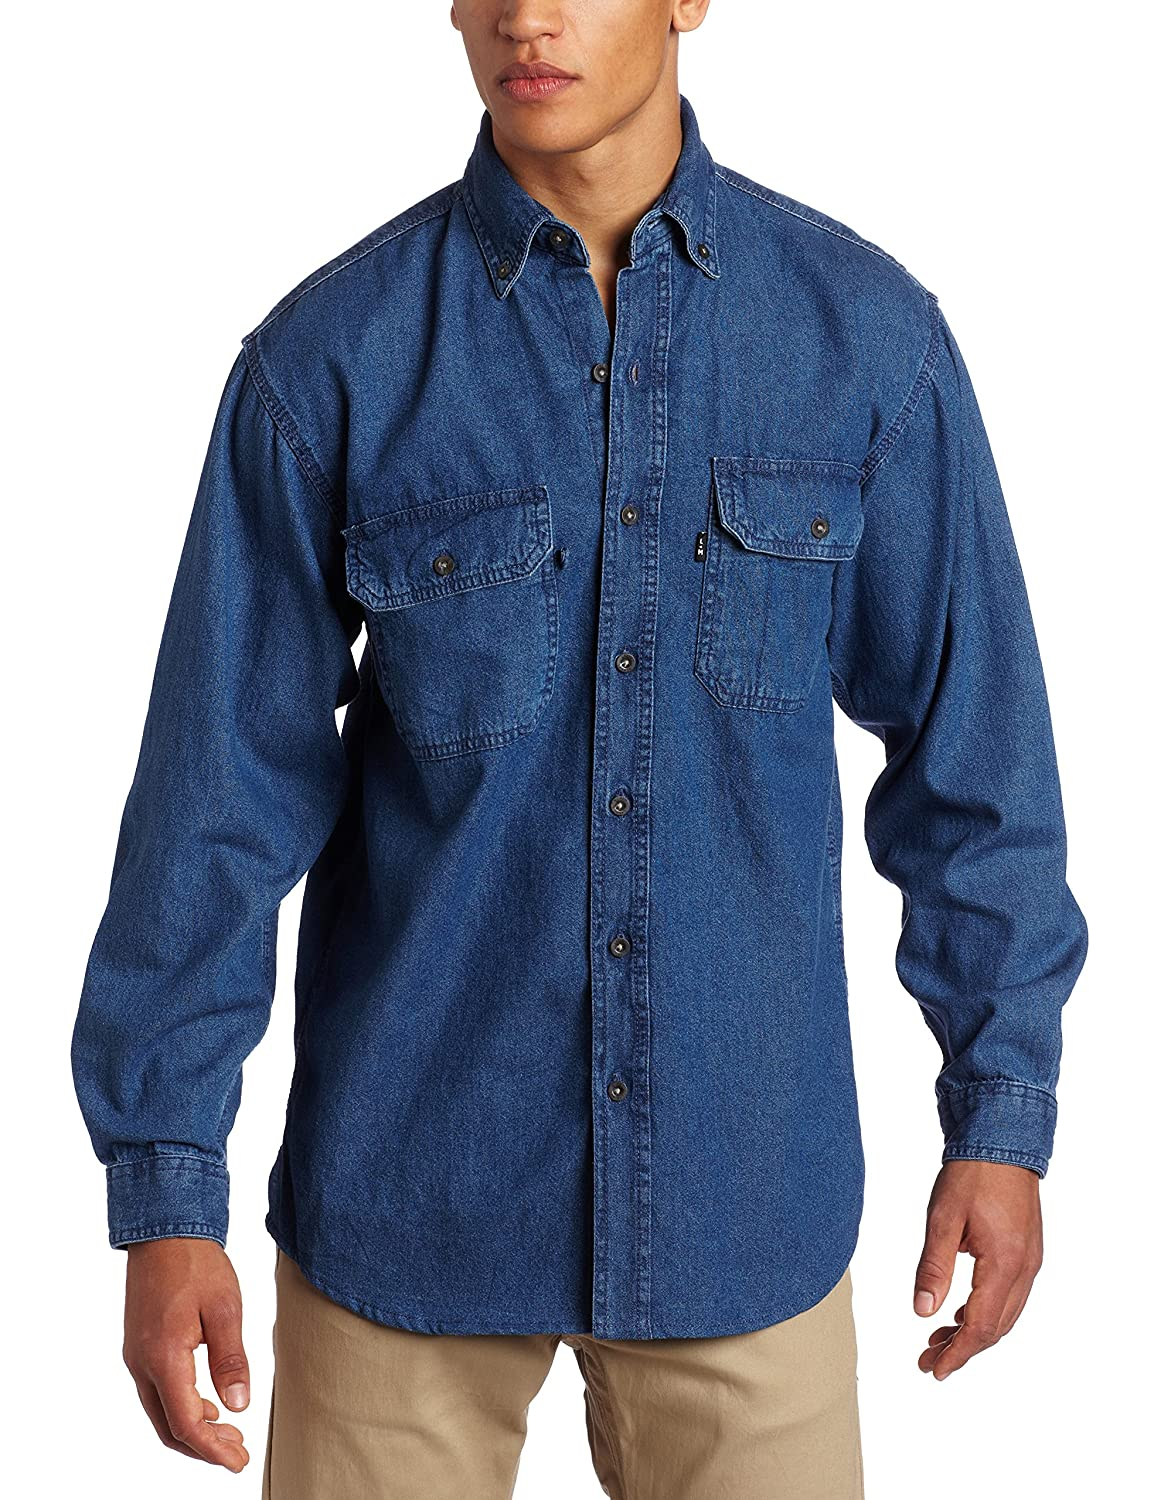 Key Apparel Men's Long Sleeve Premium Denim Enzyme Washed Shirt 542